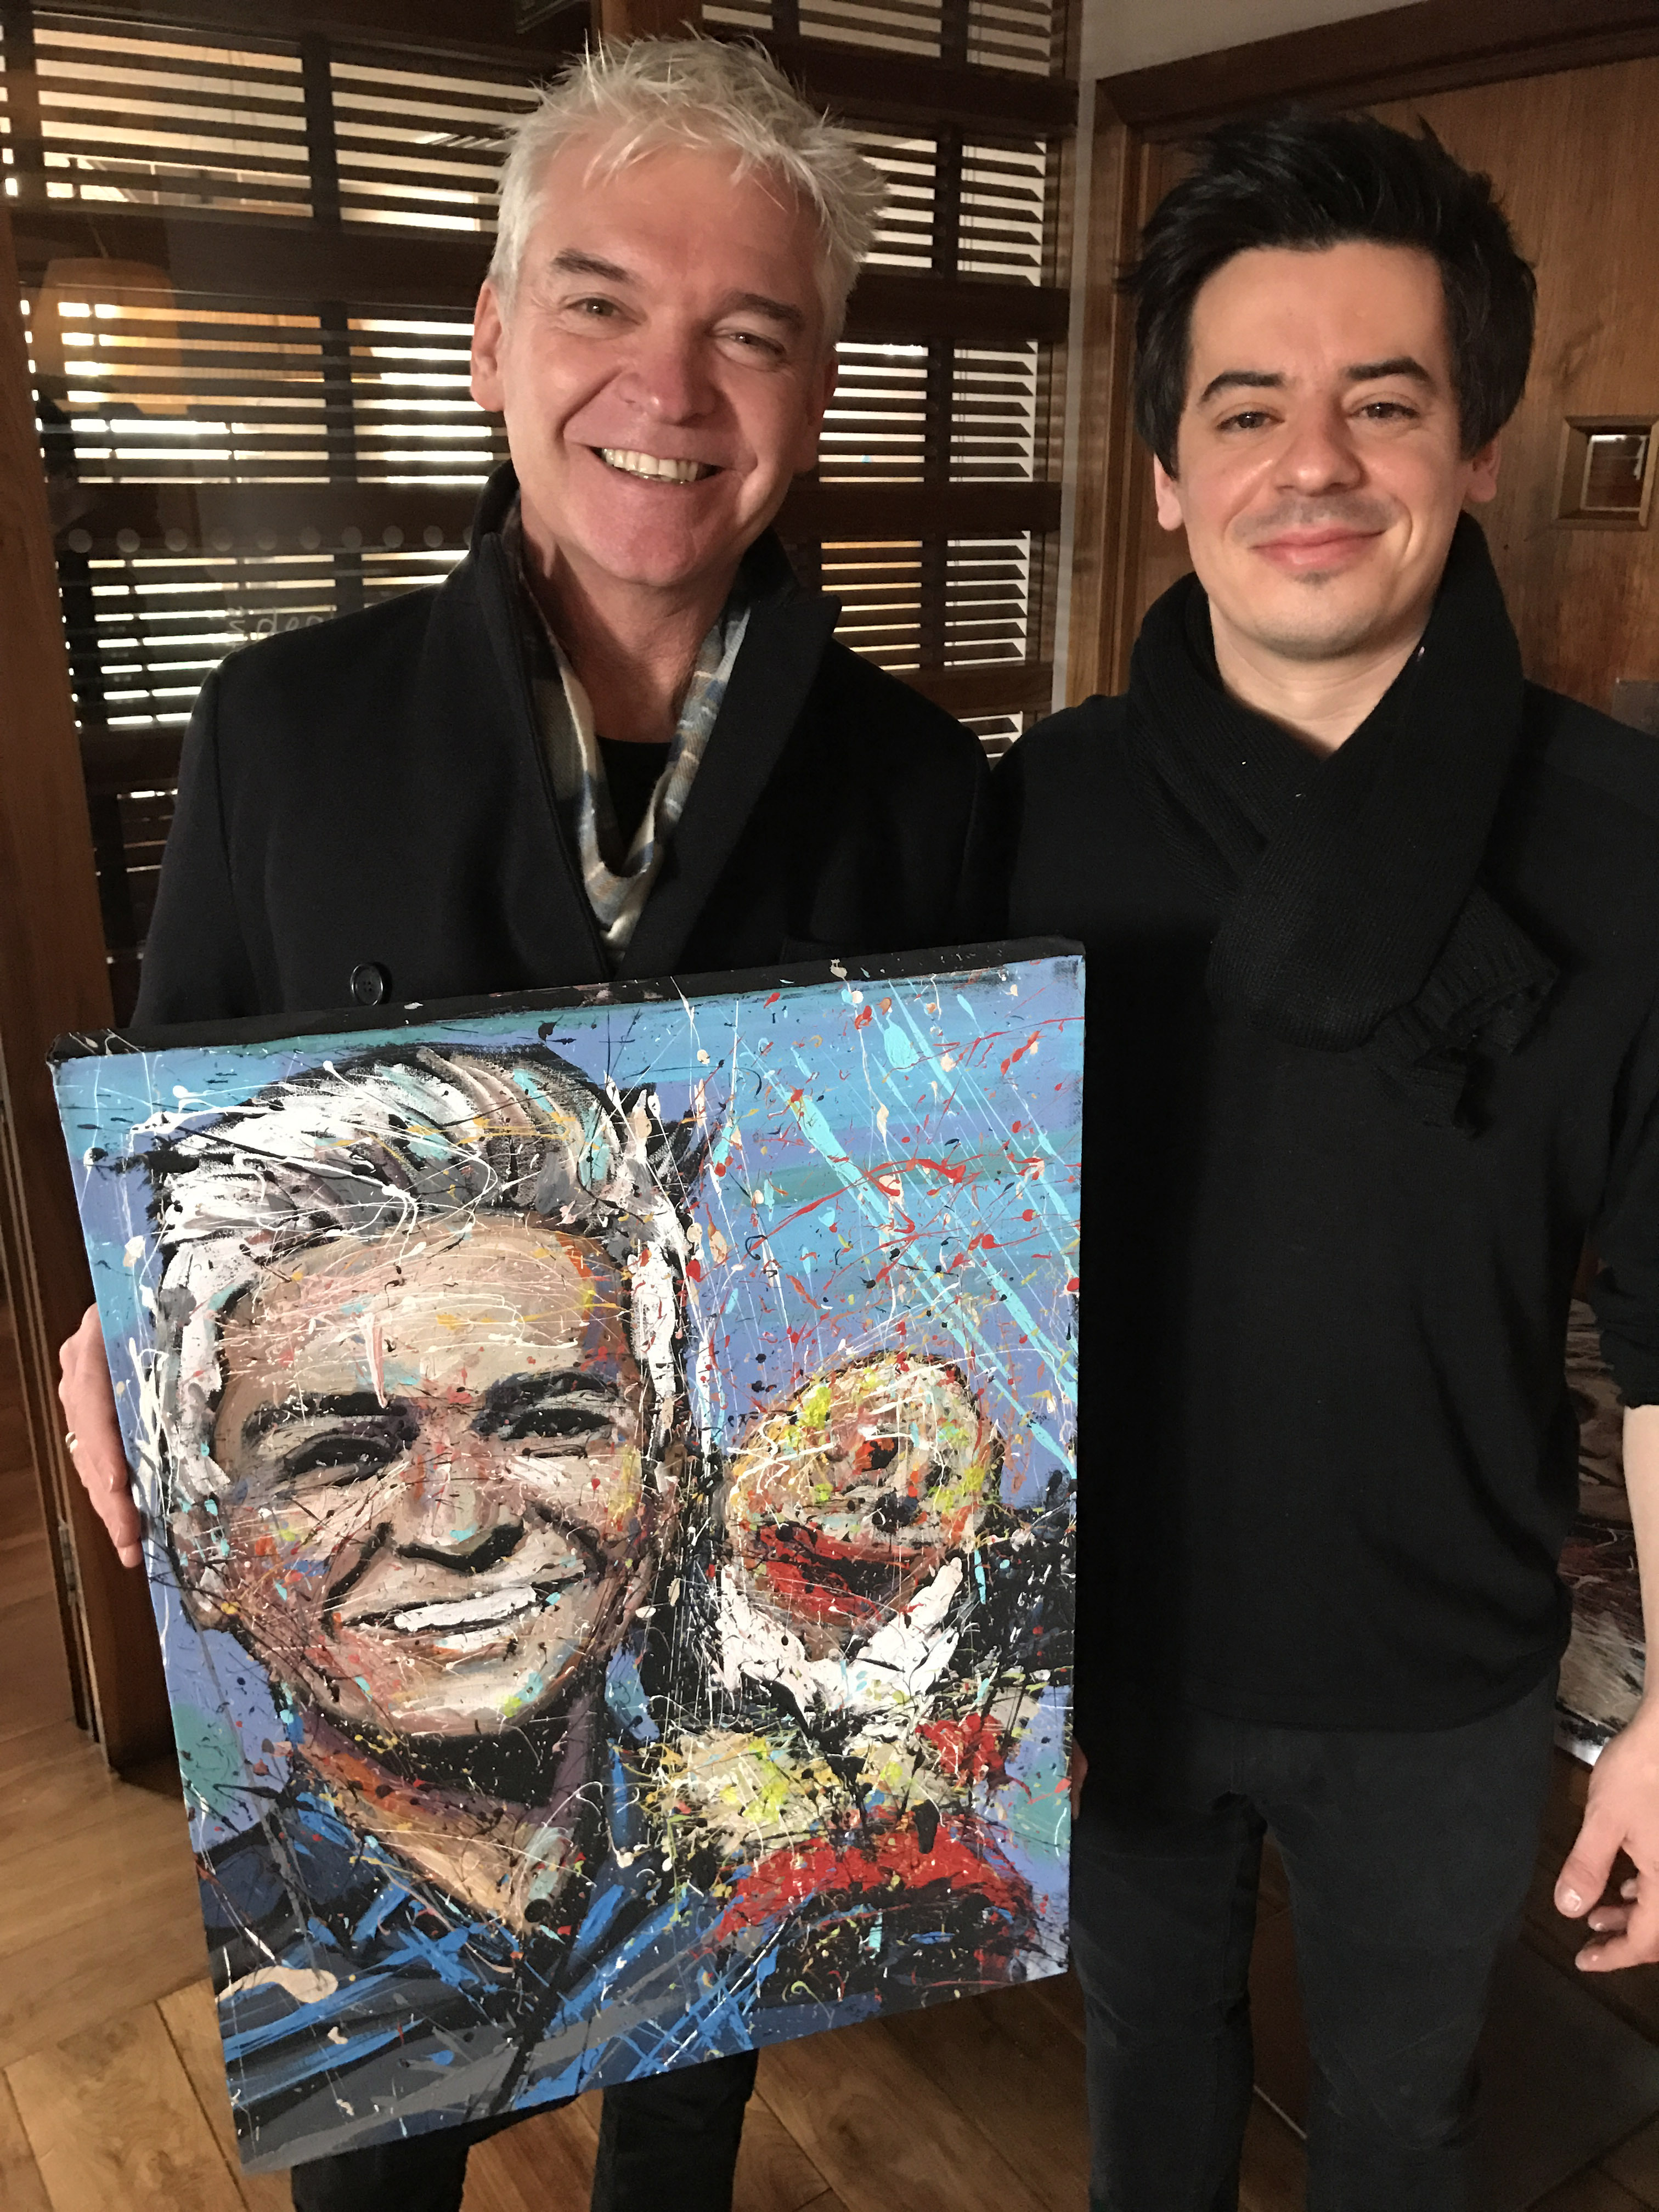 Phillip And 'Gordon The Gopher'